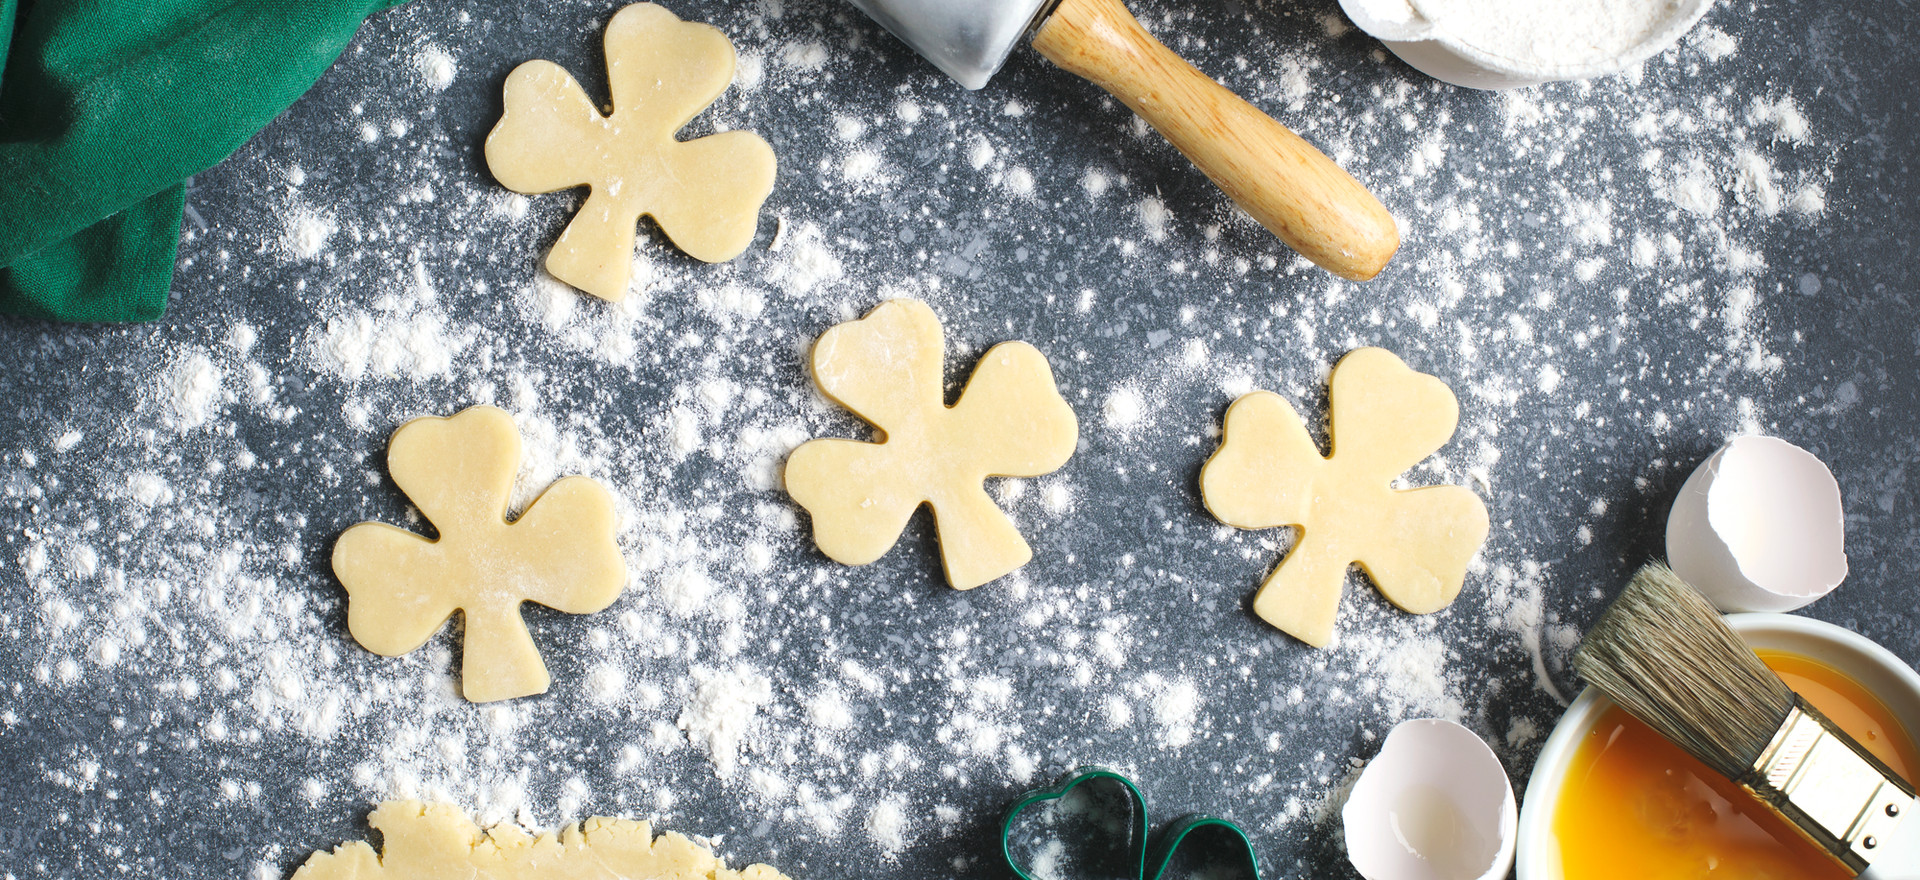 Make Clover Cookies